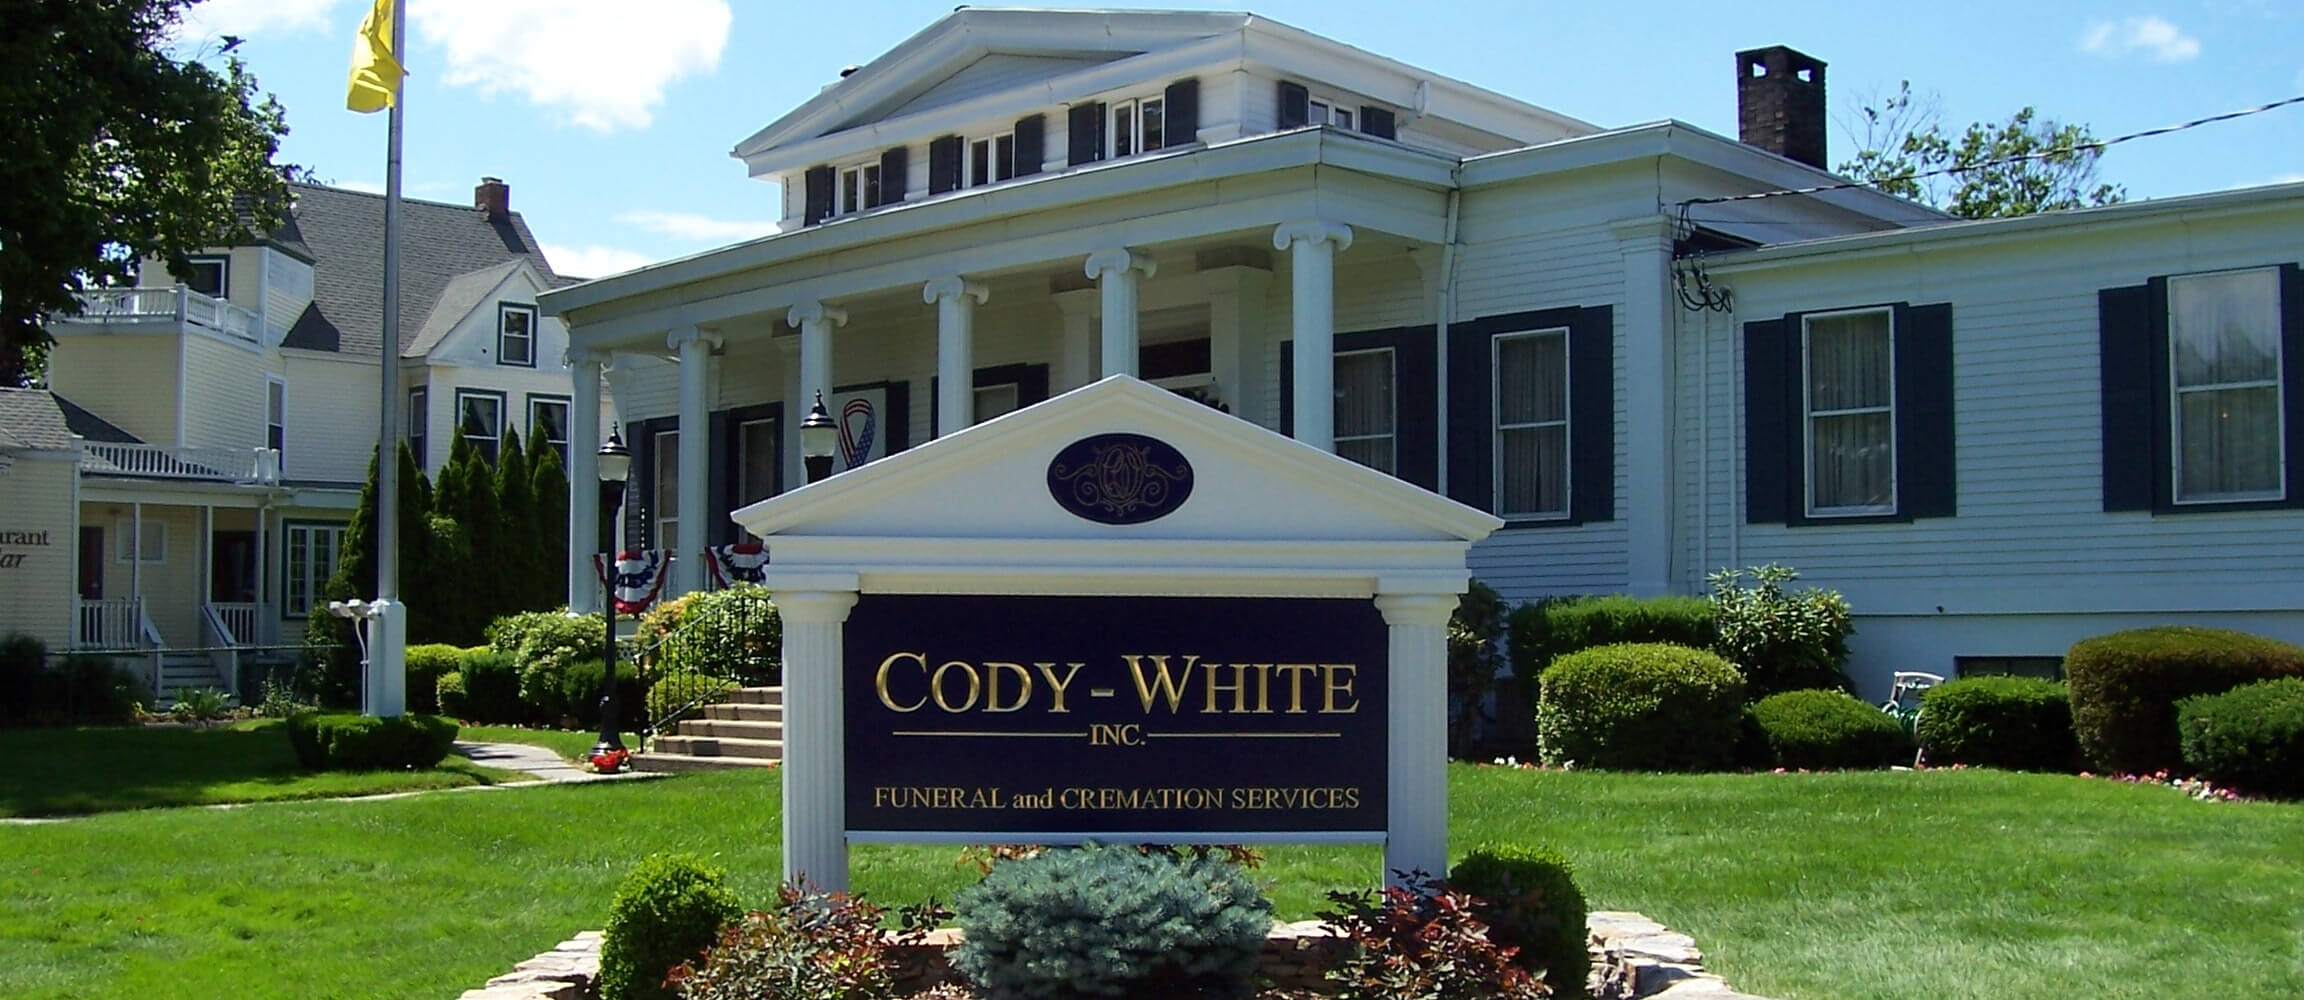 funeral home and cremations in Milford CT